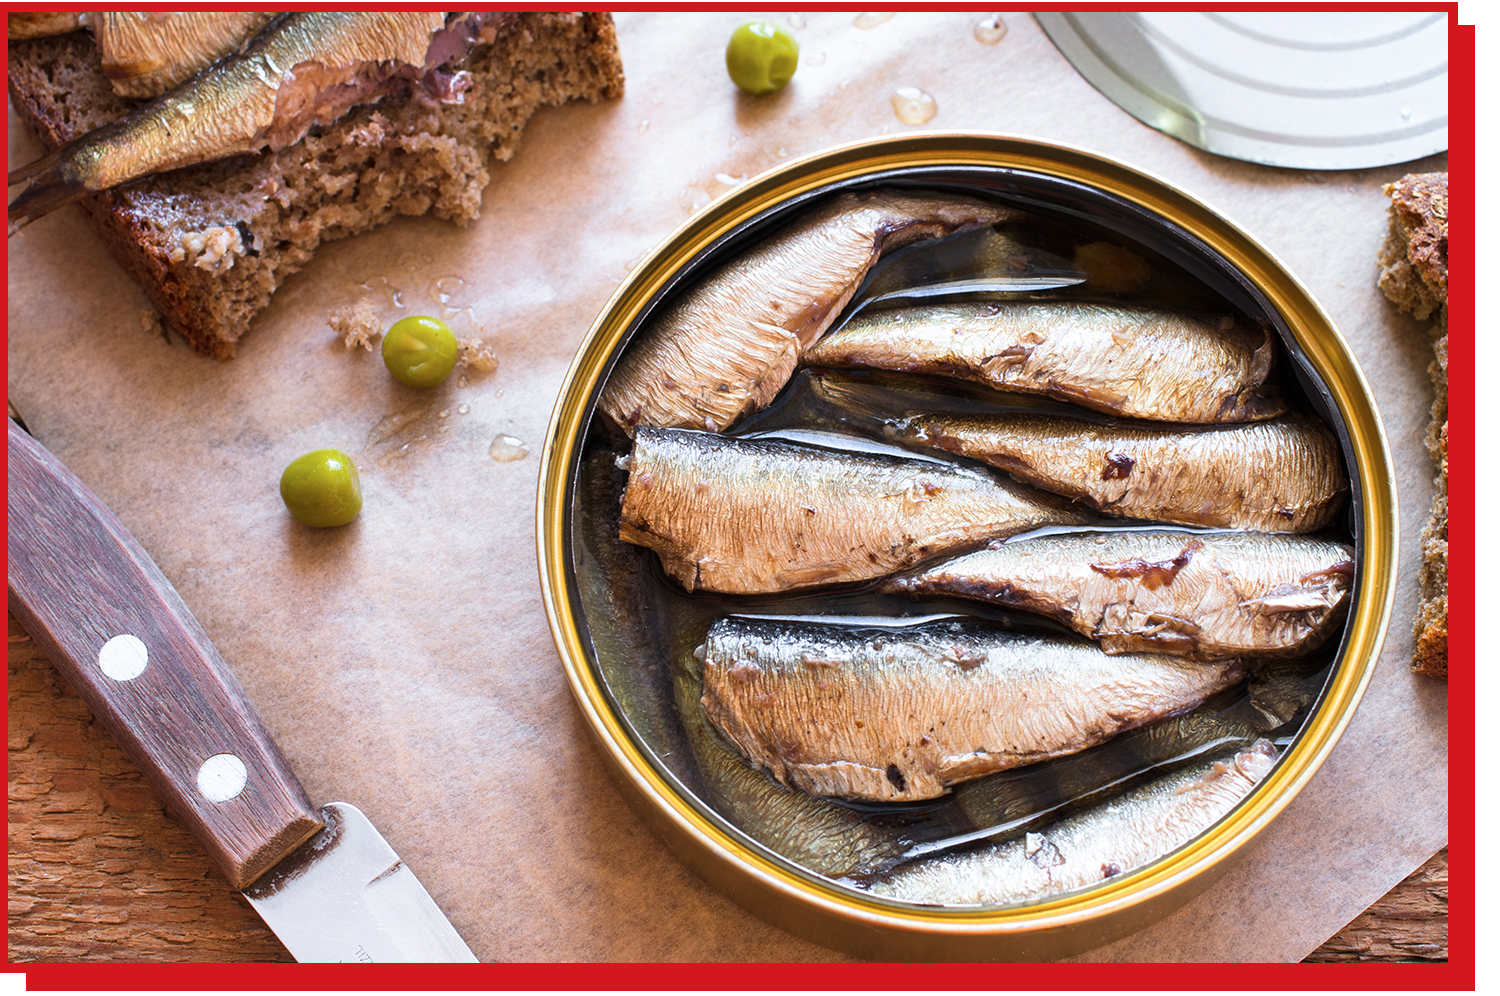 An open can of sardines with the filets still in their oil.